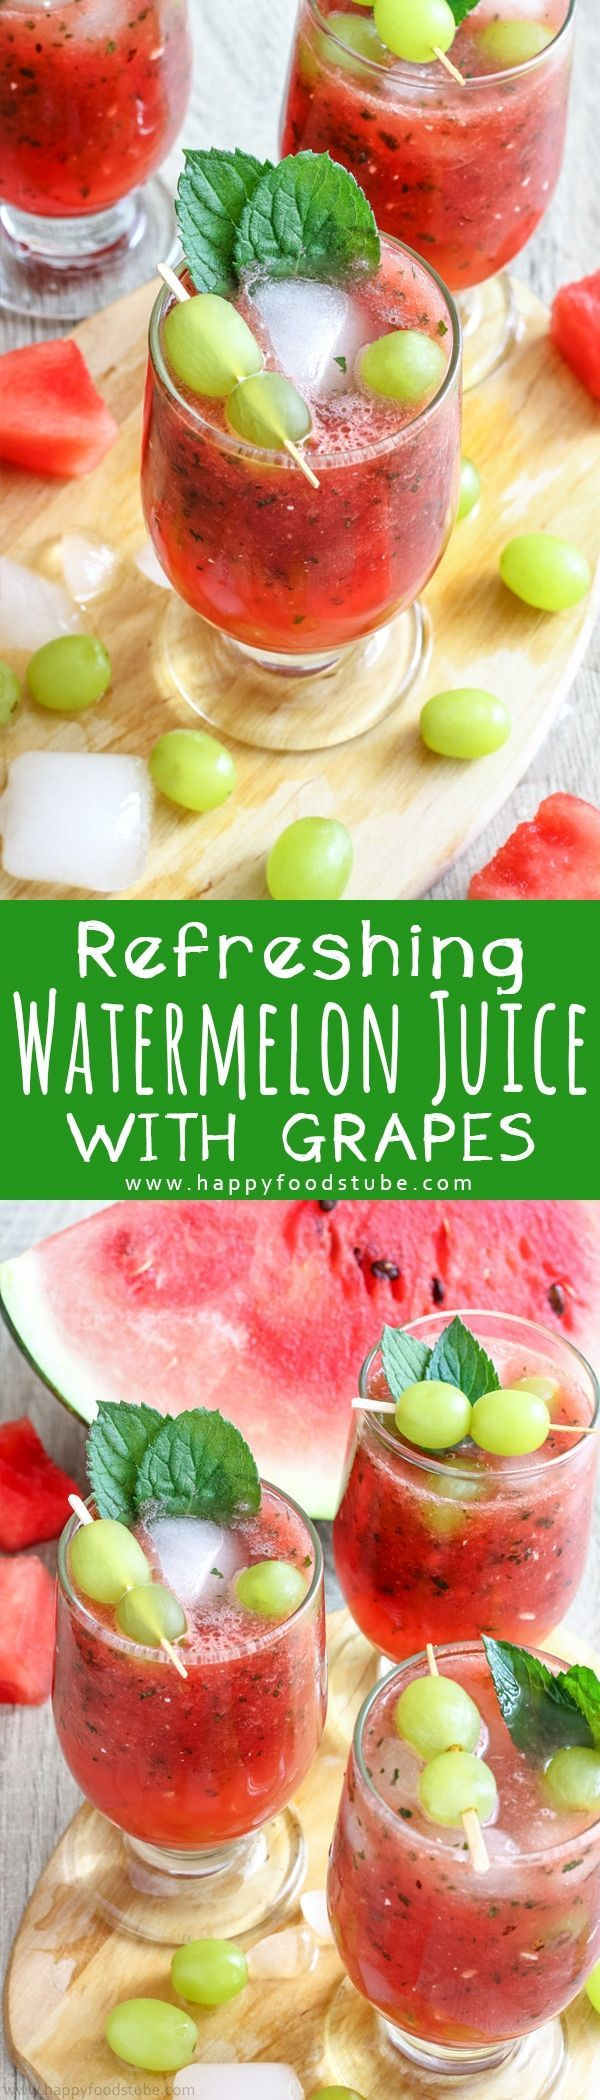 This refreshing watermelon juice with grapes is the best summer drink. Watermelon, mint & honey are combined together and grapes are added for the extra flavor. Non Alcoholic summer drink ready in 10 minutes via @happyfoodstube